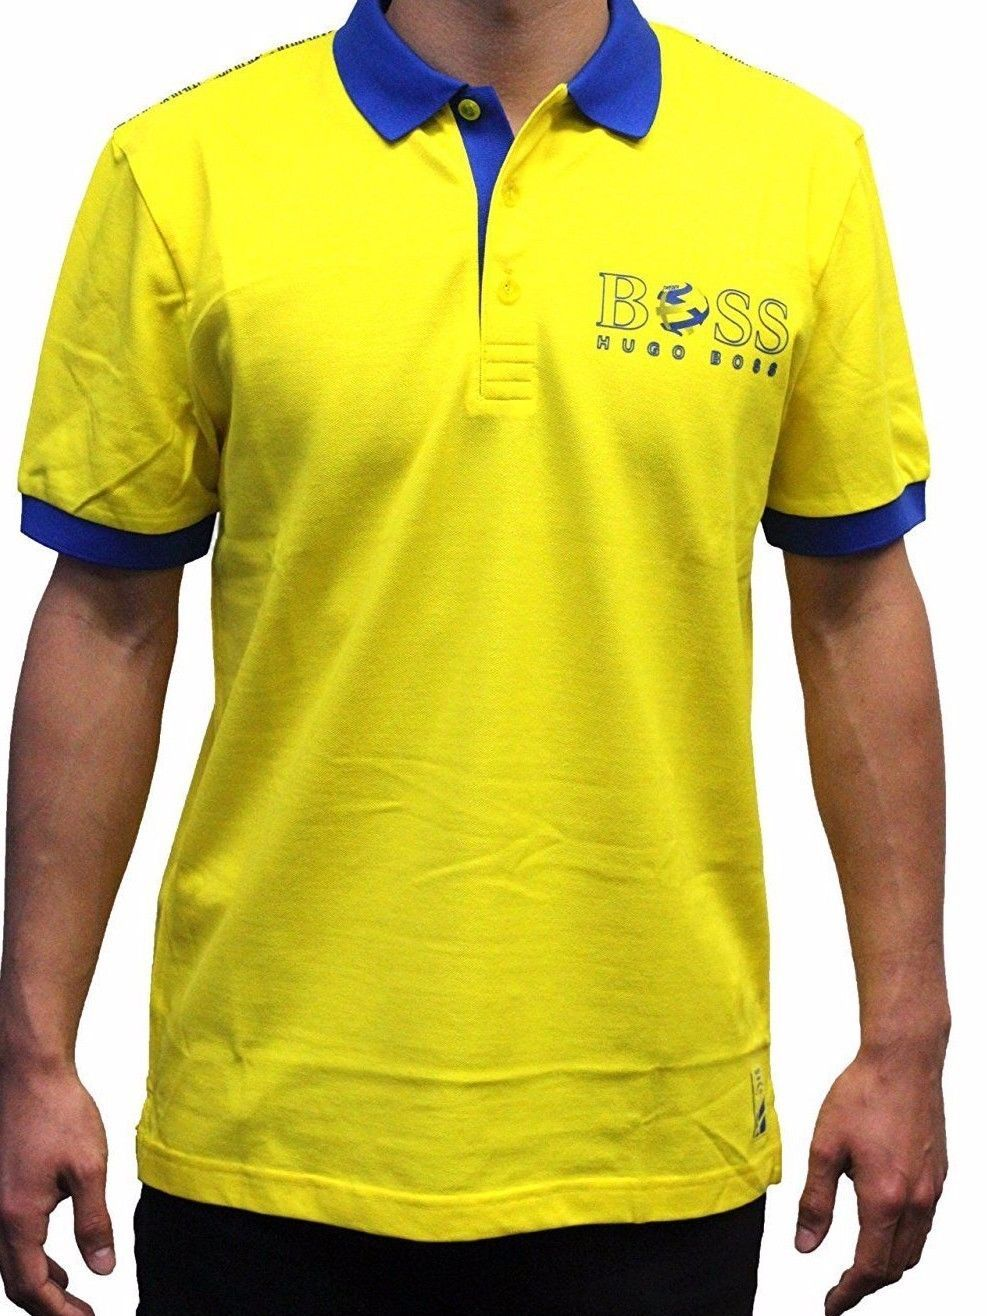 4410eae5b Hugo Boss Paddy Flag 100% Cotton Polo Shirt 50260461-732 Yellow Sweden